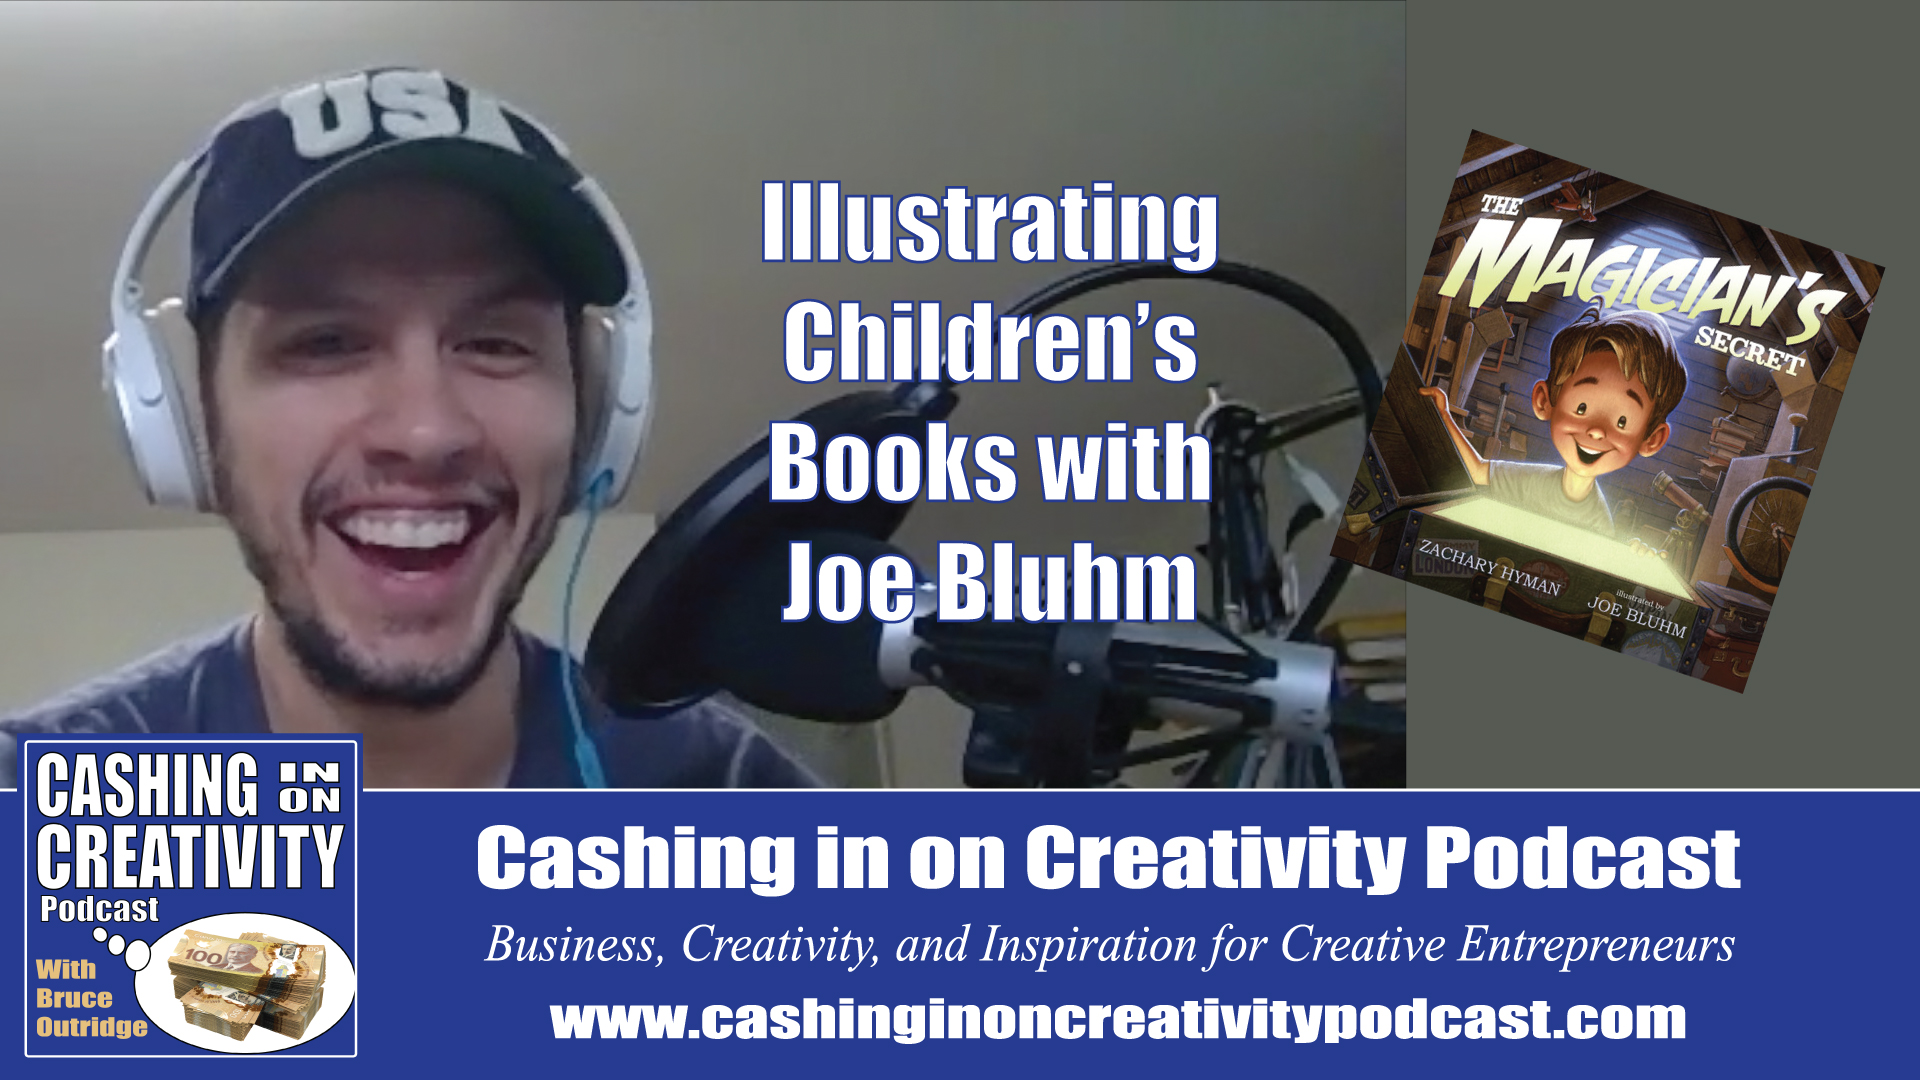 Illustrating Children's Books with Joe Bluhm